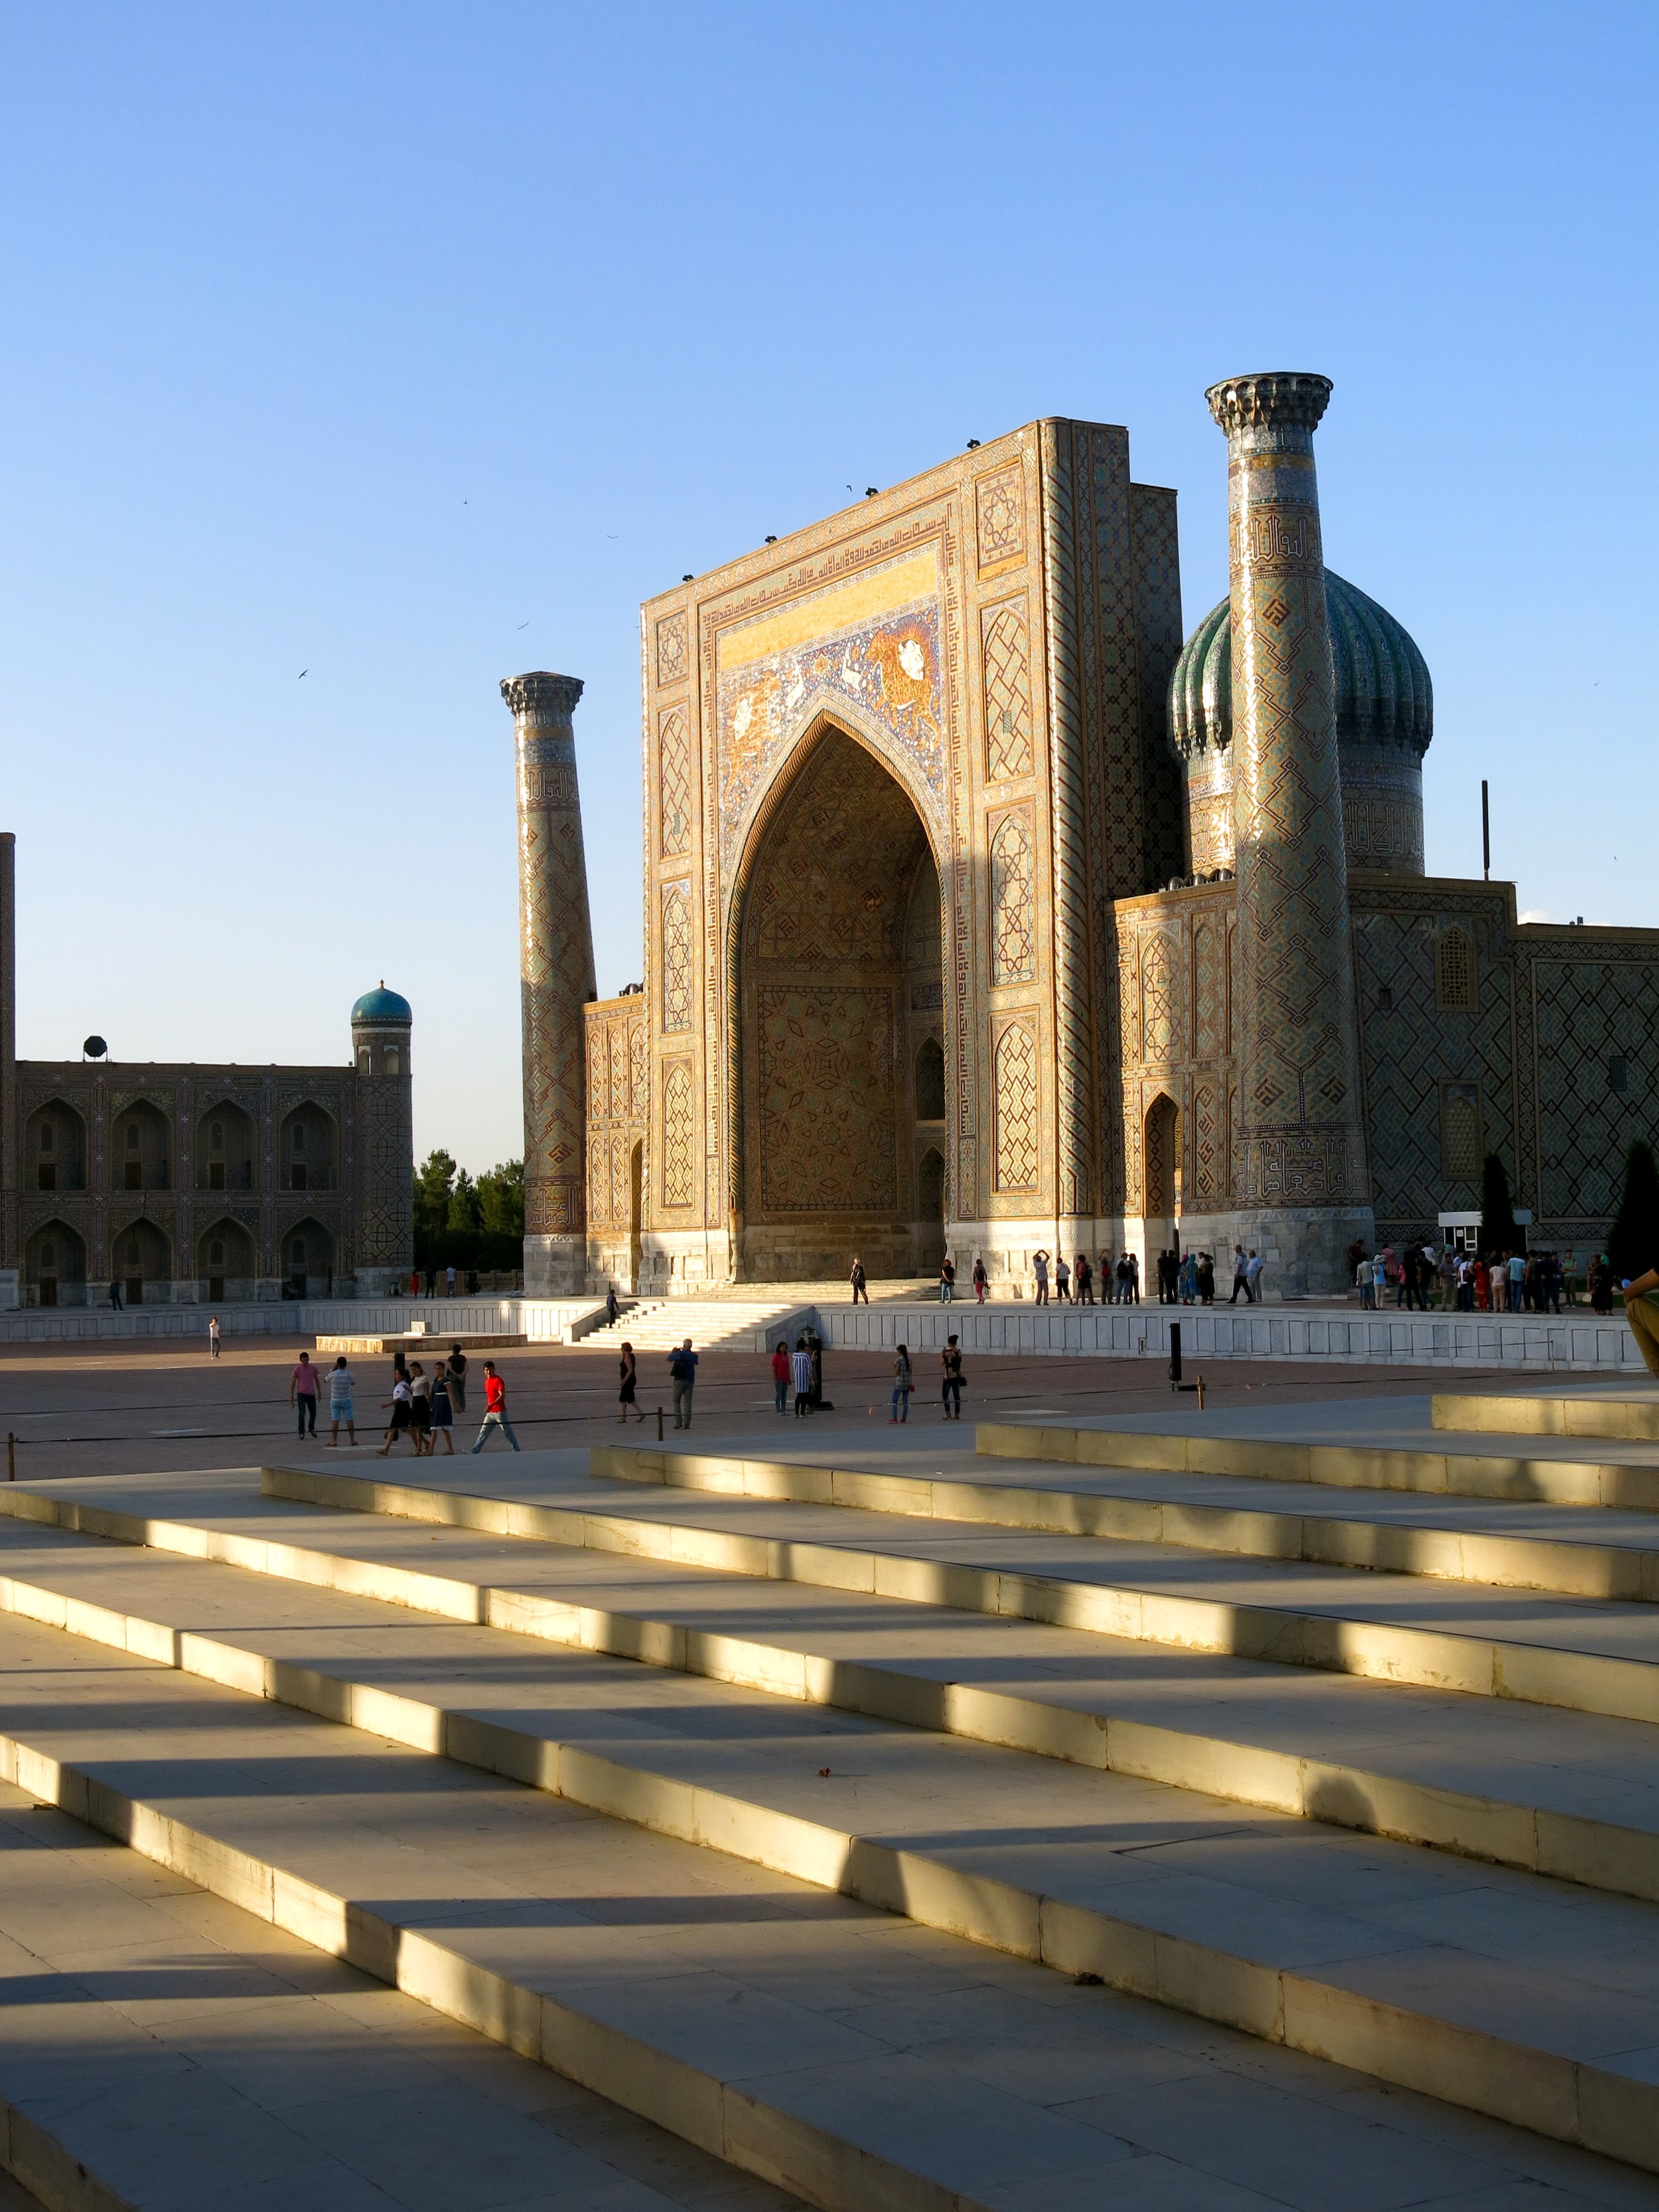 The best time to visit Registan is late afternoon